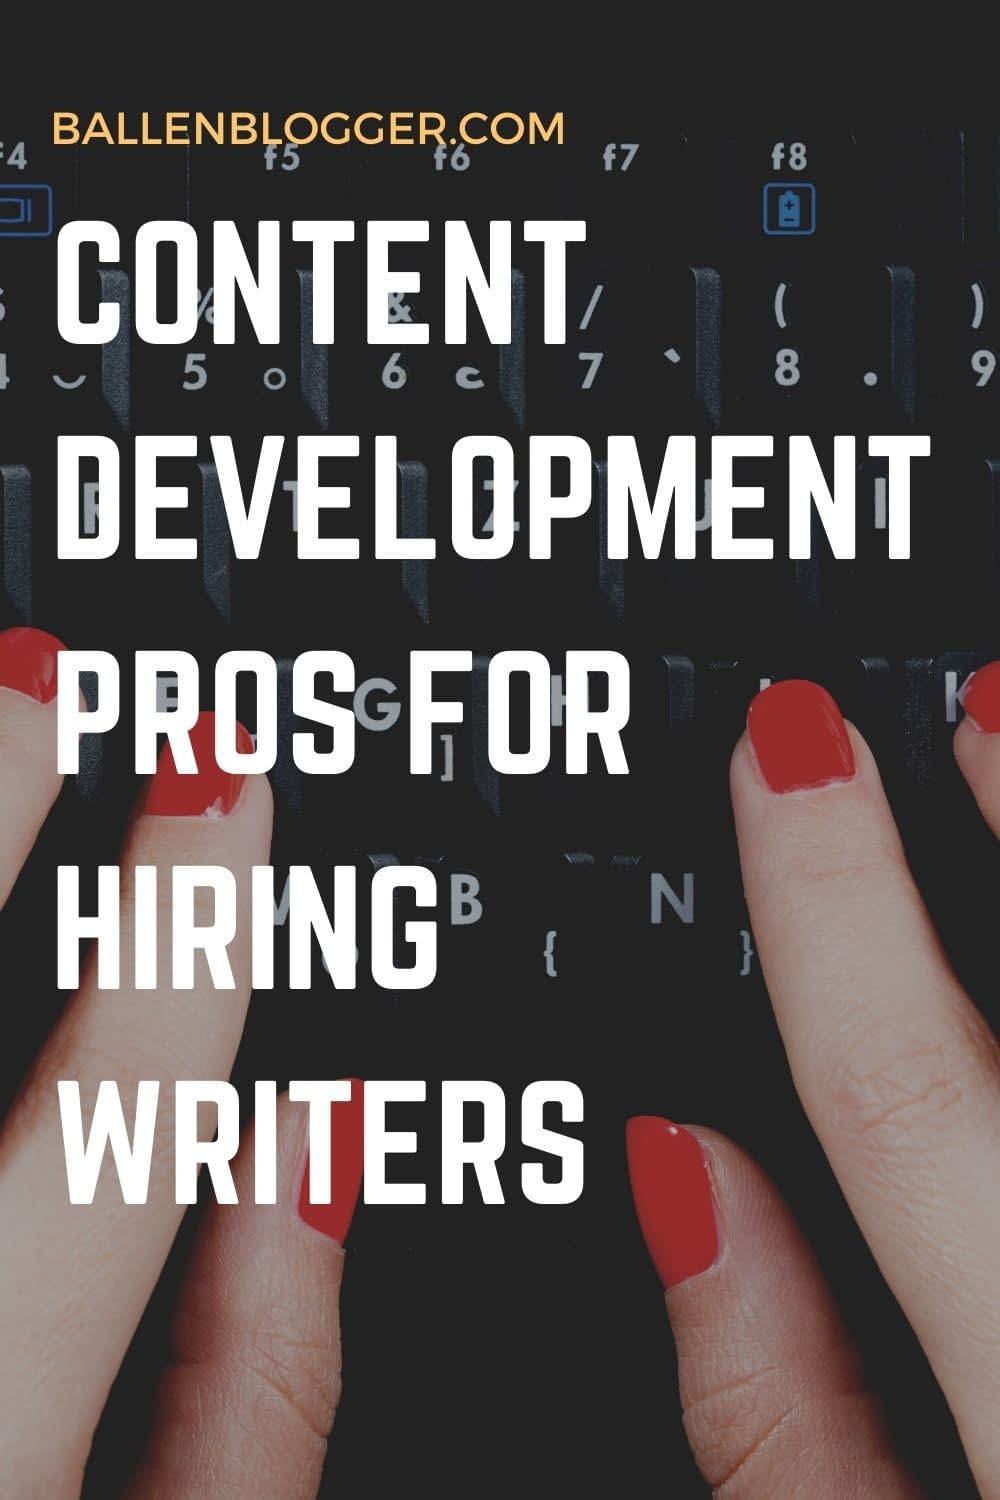 Content Development Pros is a reliable content writing and marketing service that offers high-quality verbiage at an extremely low price. But how do they compare to similar companies that do the same thing? Let's find out.